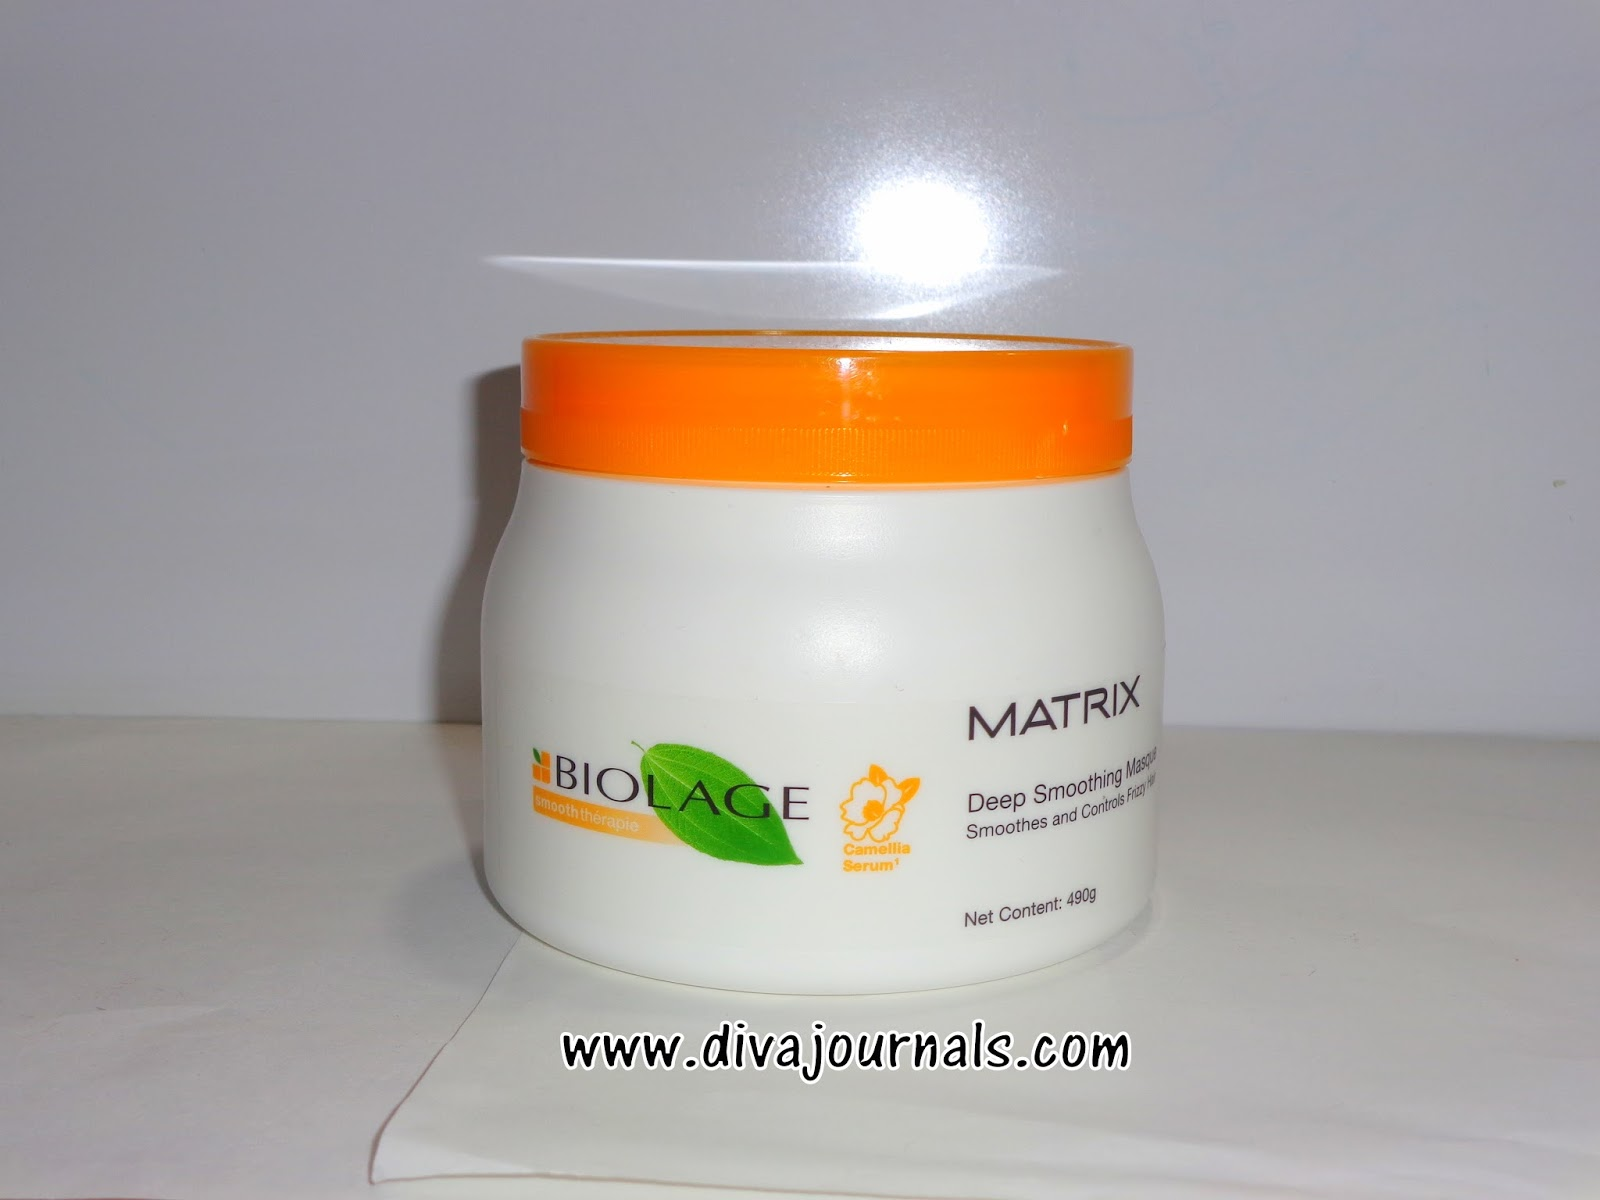 Matrix Biolage Deep Smoothing Masque Review